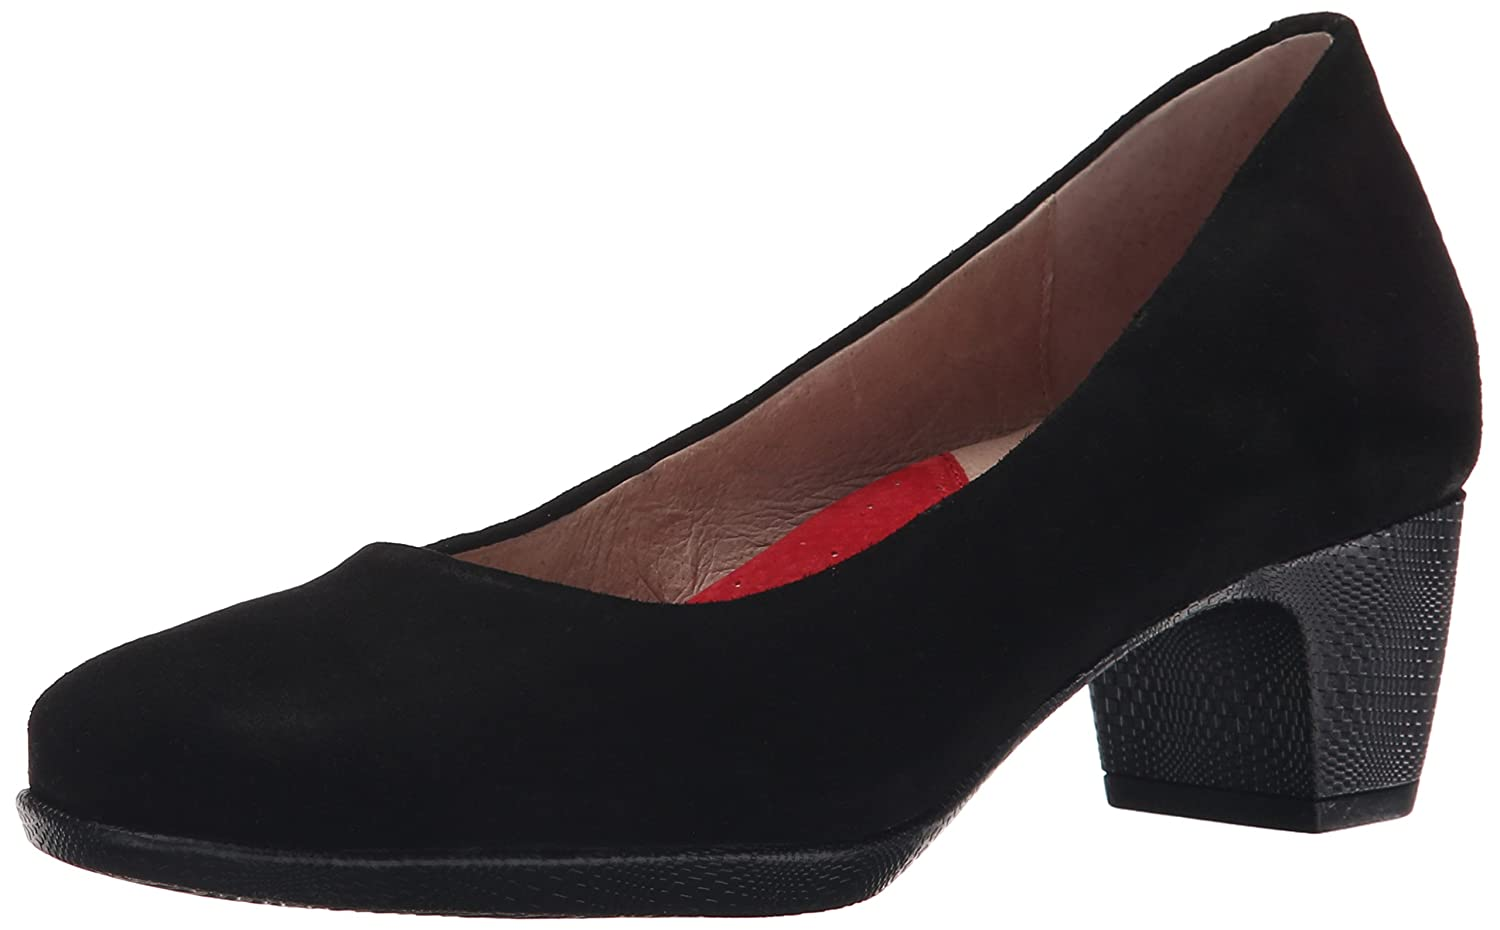 SoftWalk Women's Imperial Dress Pump B00S031IV4 7 W US|Black Suede